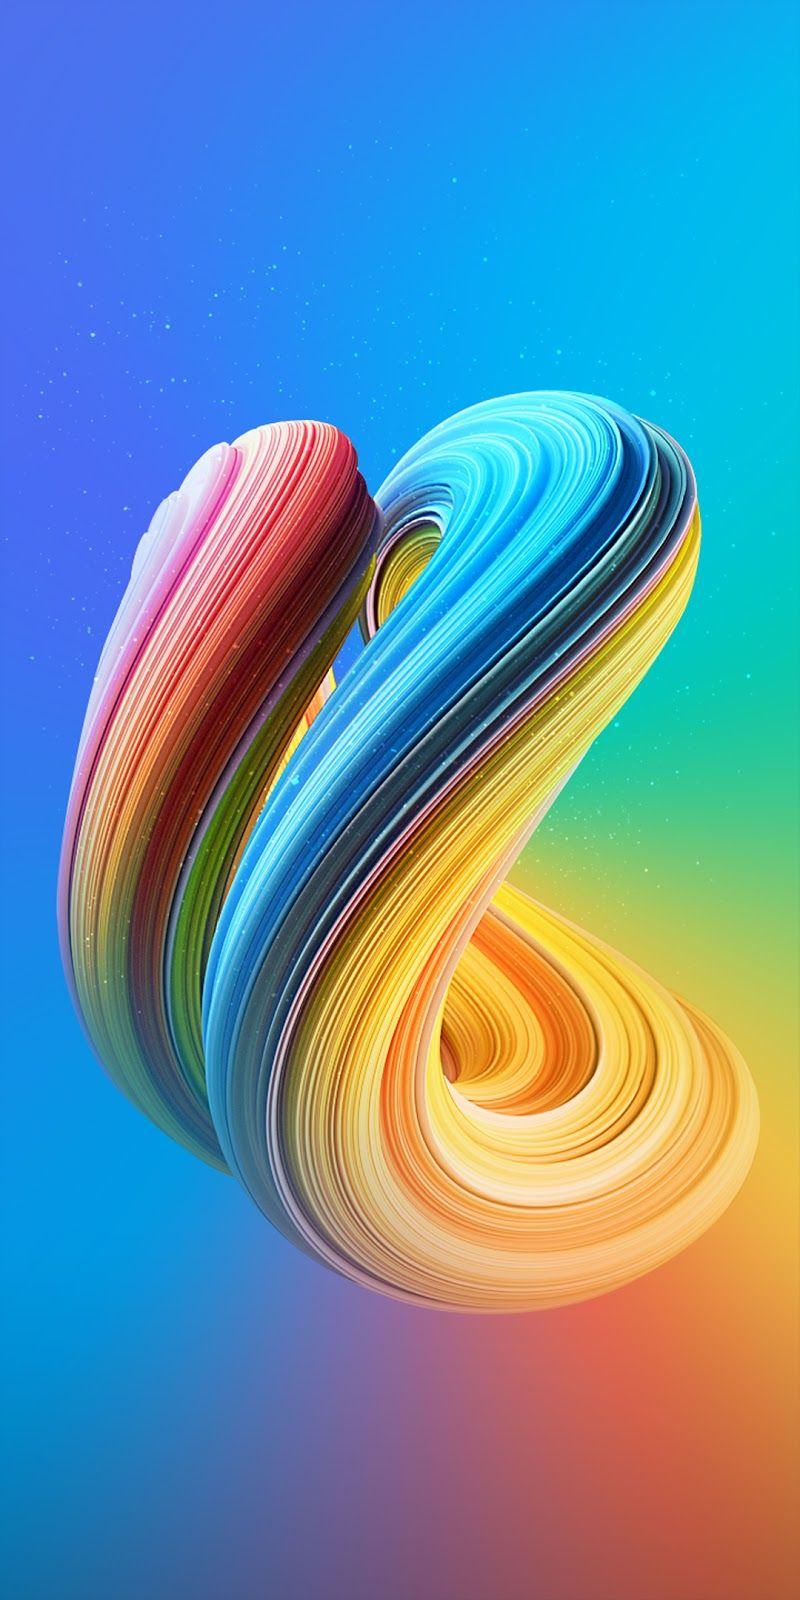 Tecno Camon Cm Stock Wallpapers 9 Wallpapers Mobile Wallpaper Android Iphone Wallpaper Android Wallpaper